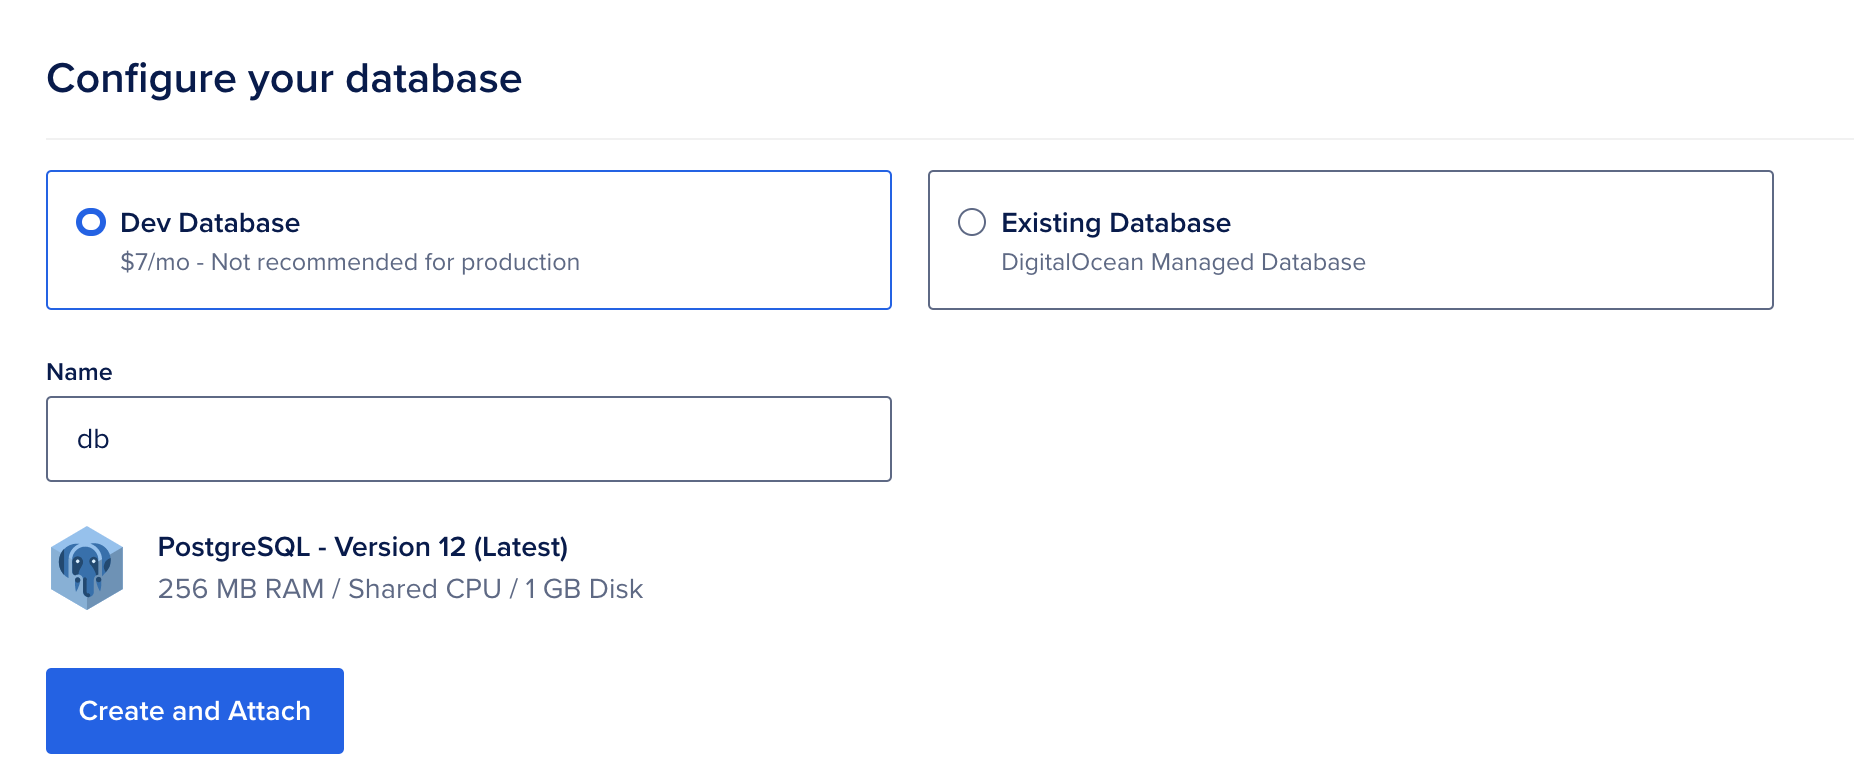 Configure your database